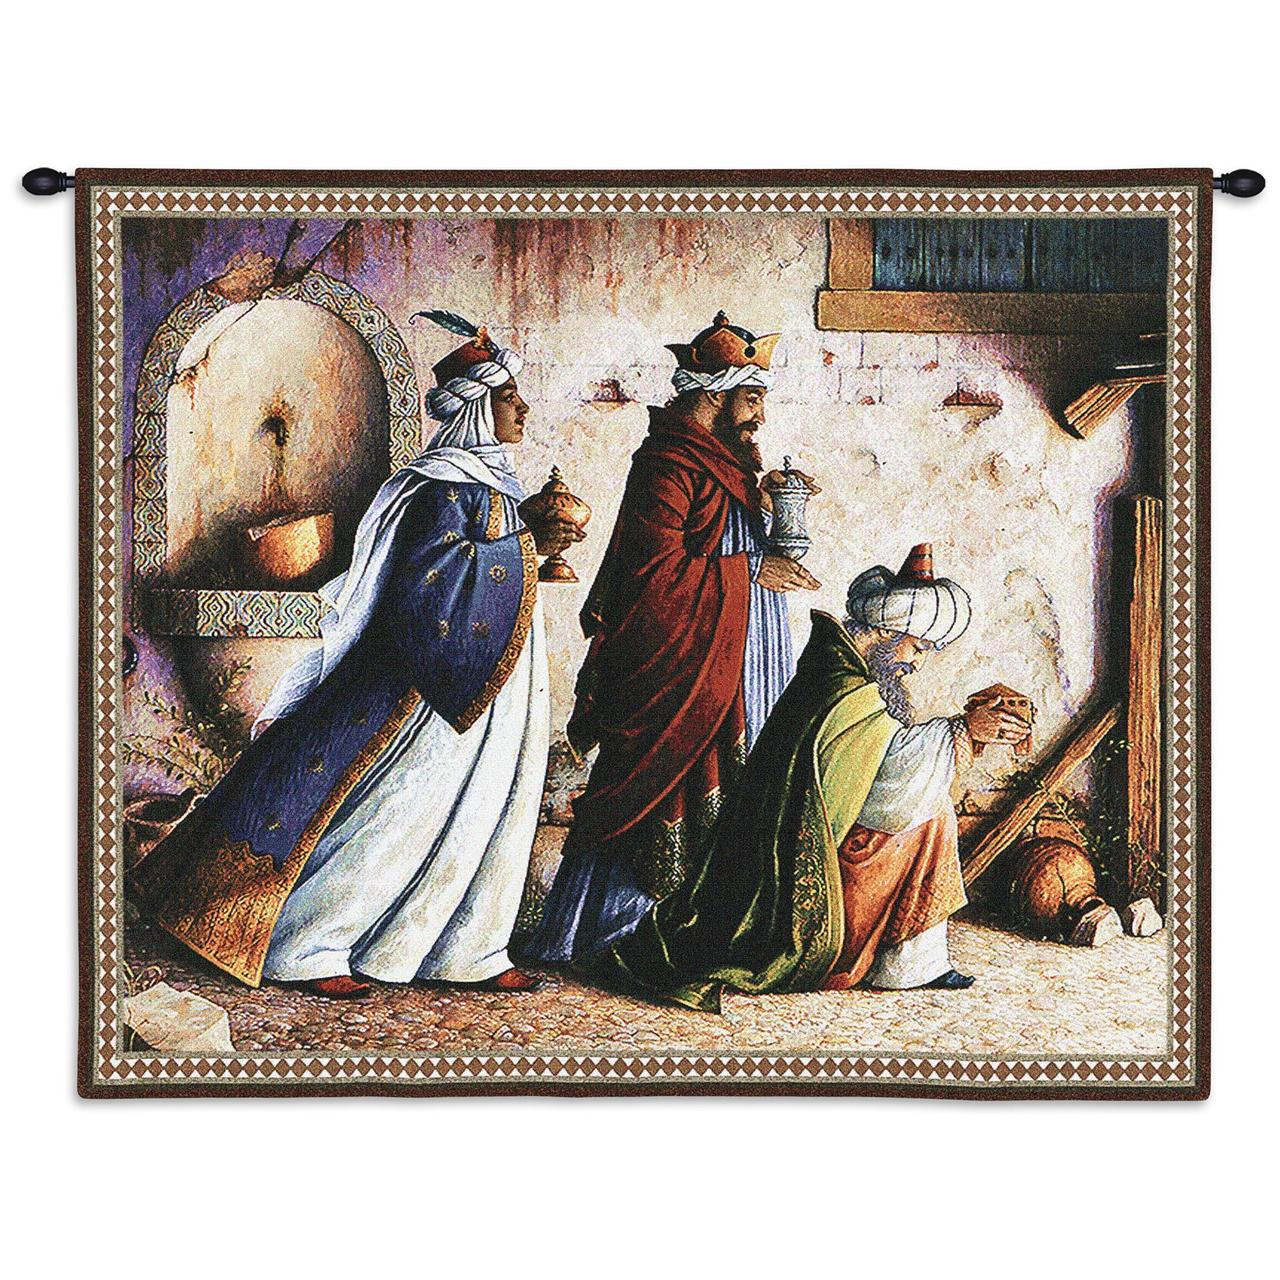 Tapestry-Christian Decor-Christmas-Three Kings